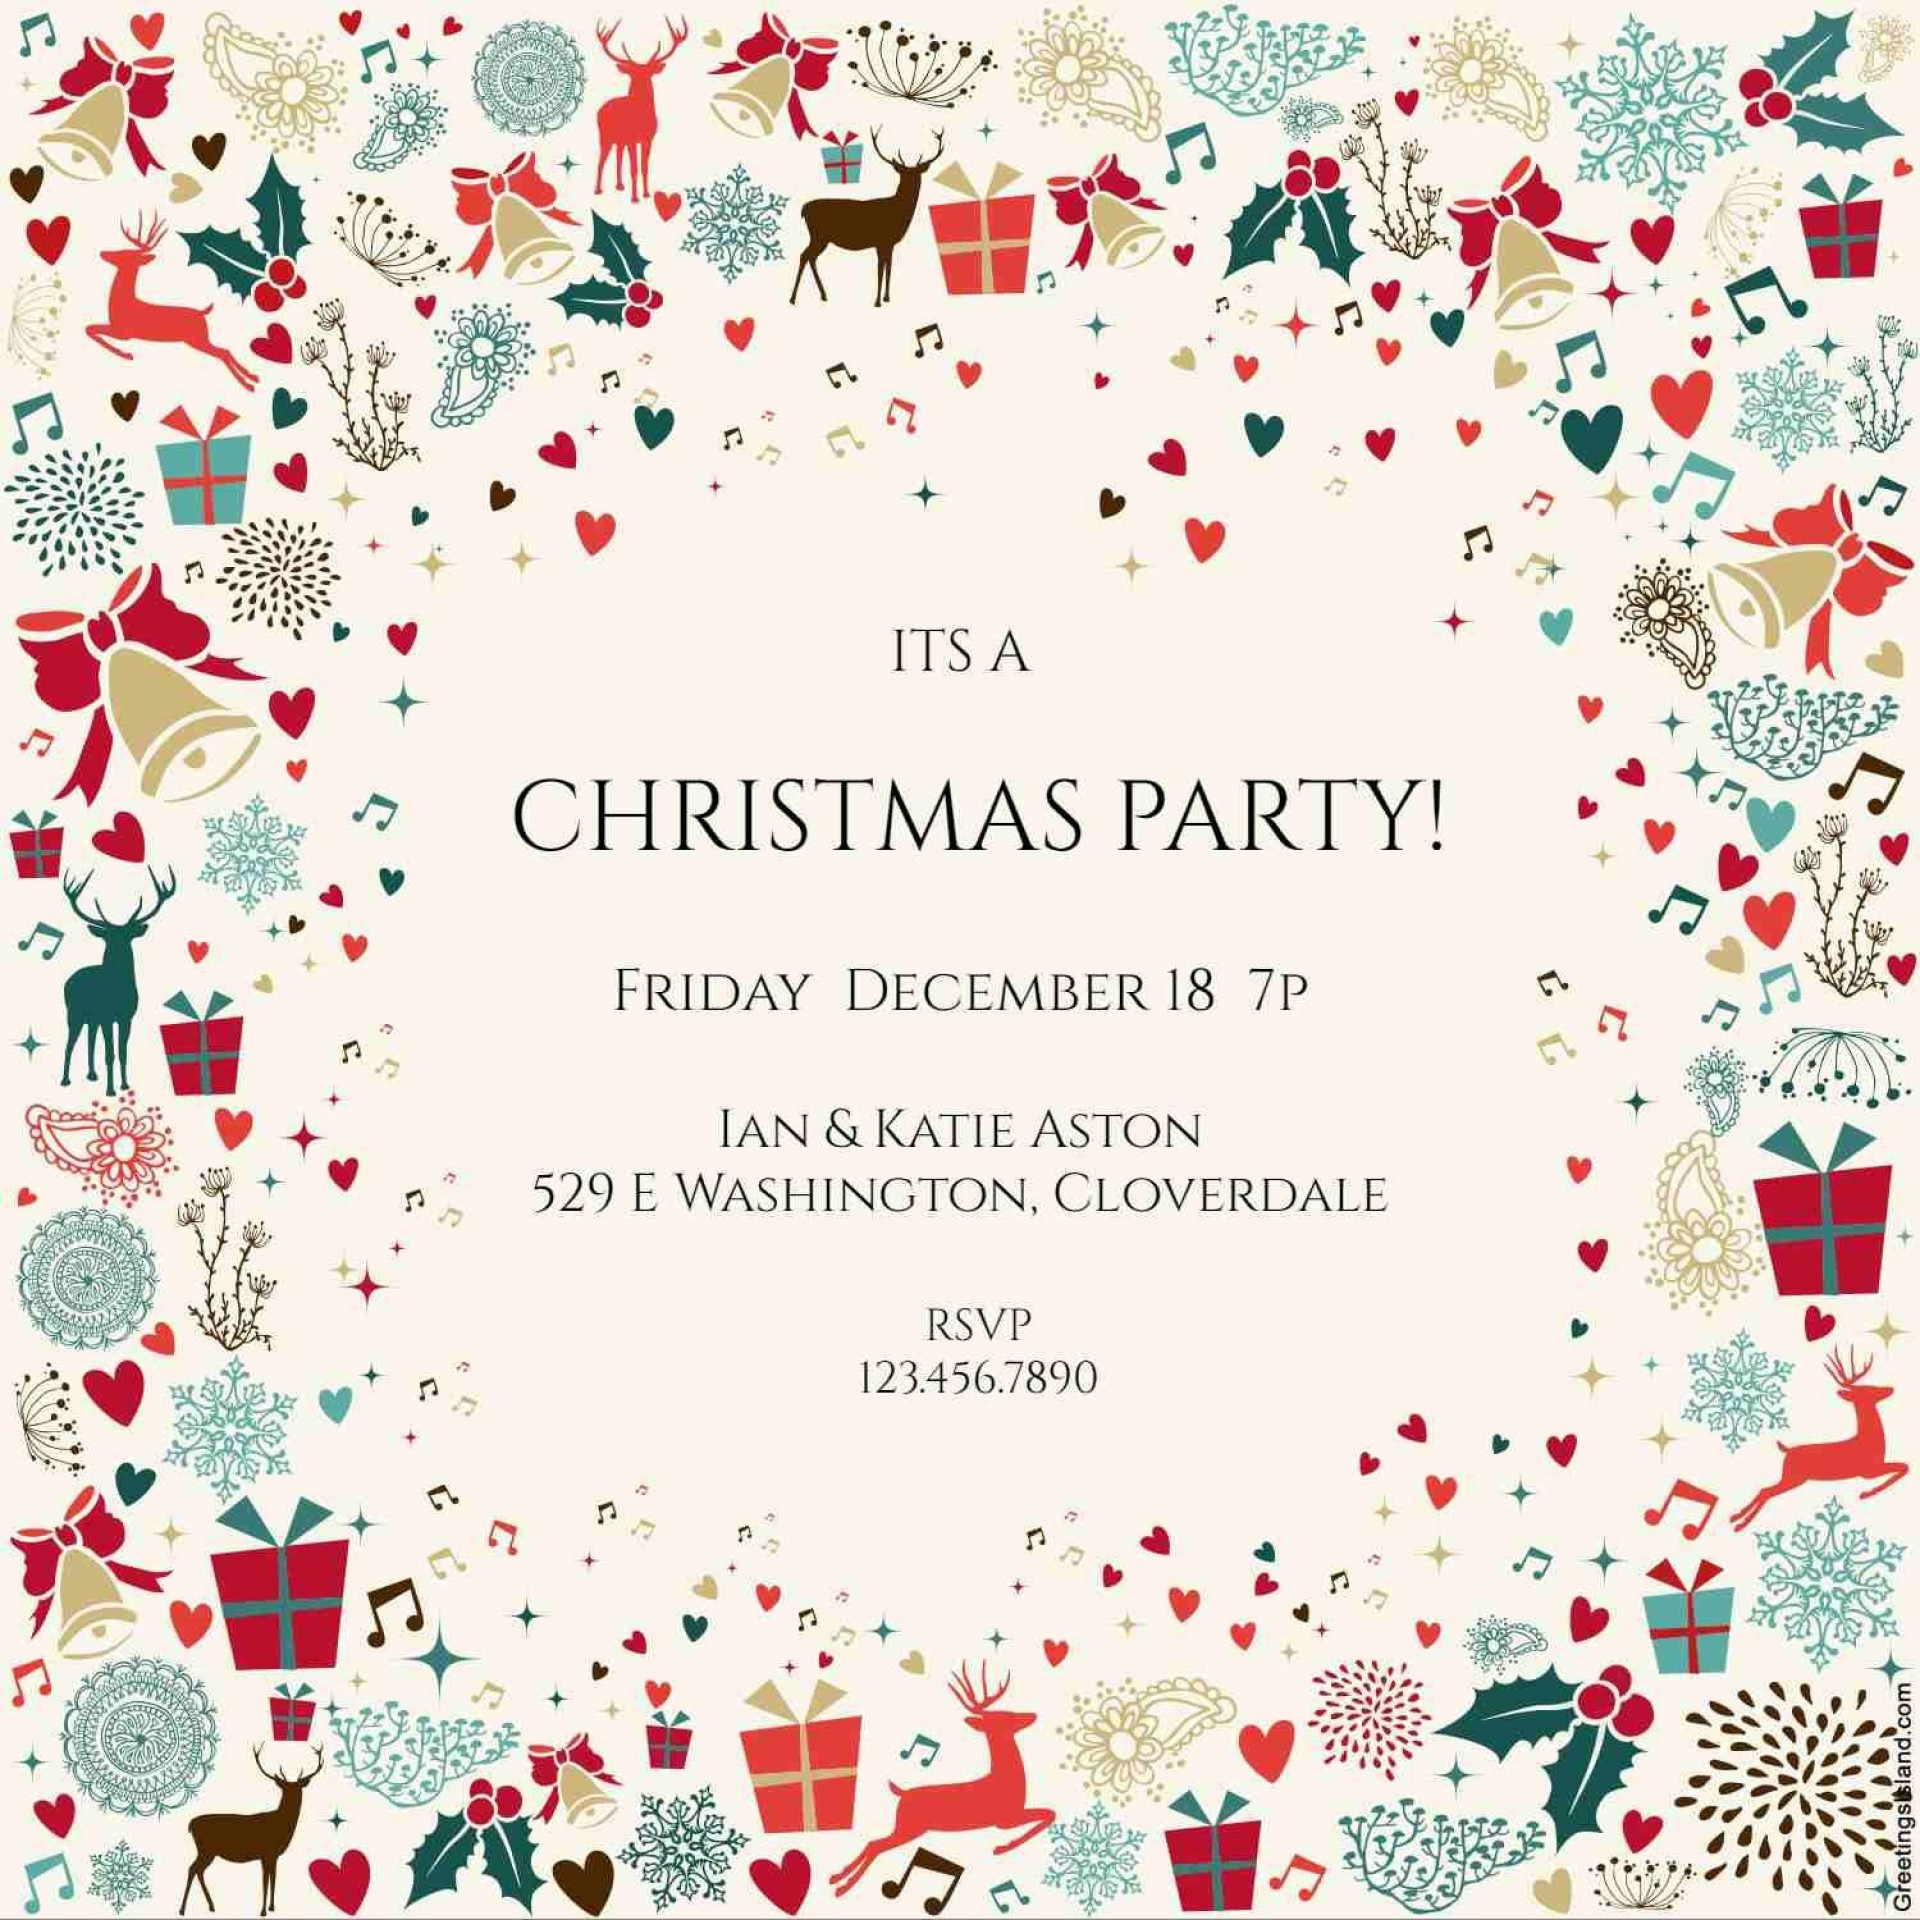 006 Sensational Free Email Holiday Party Invitation Template Concept  Templates Christma1920